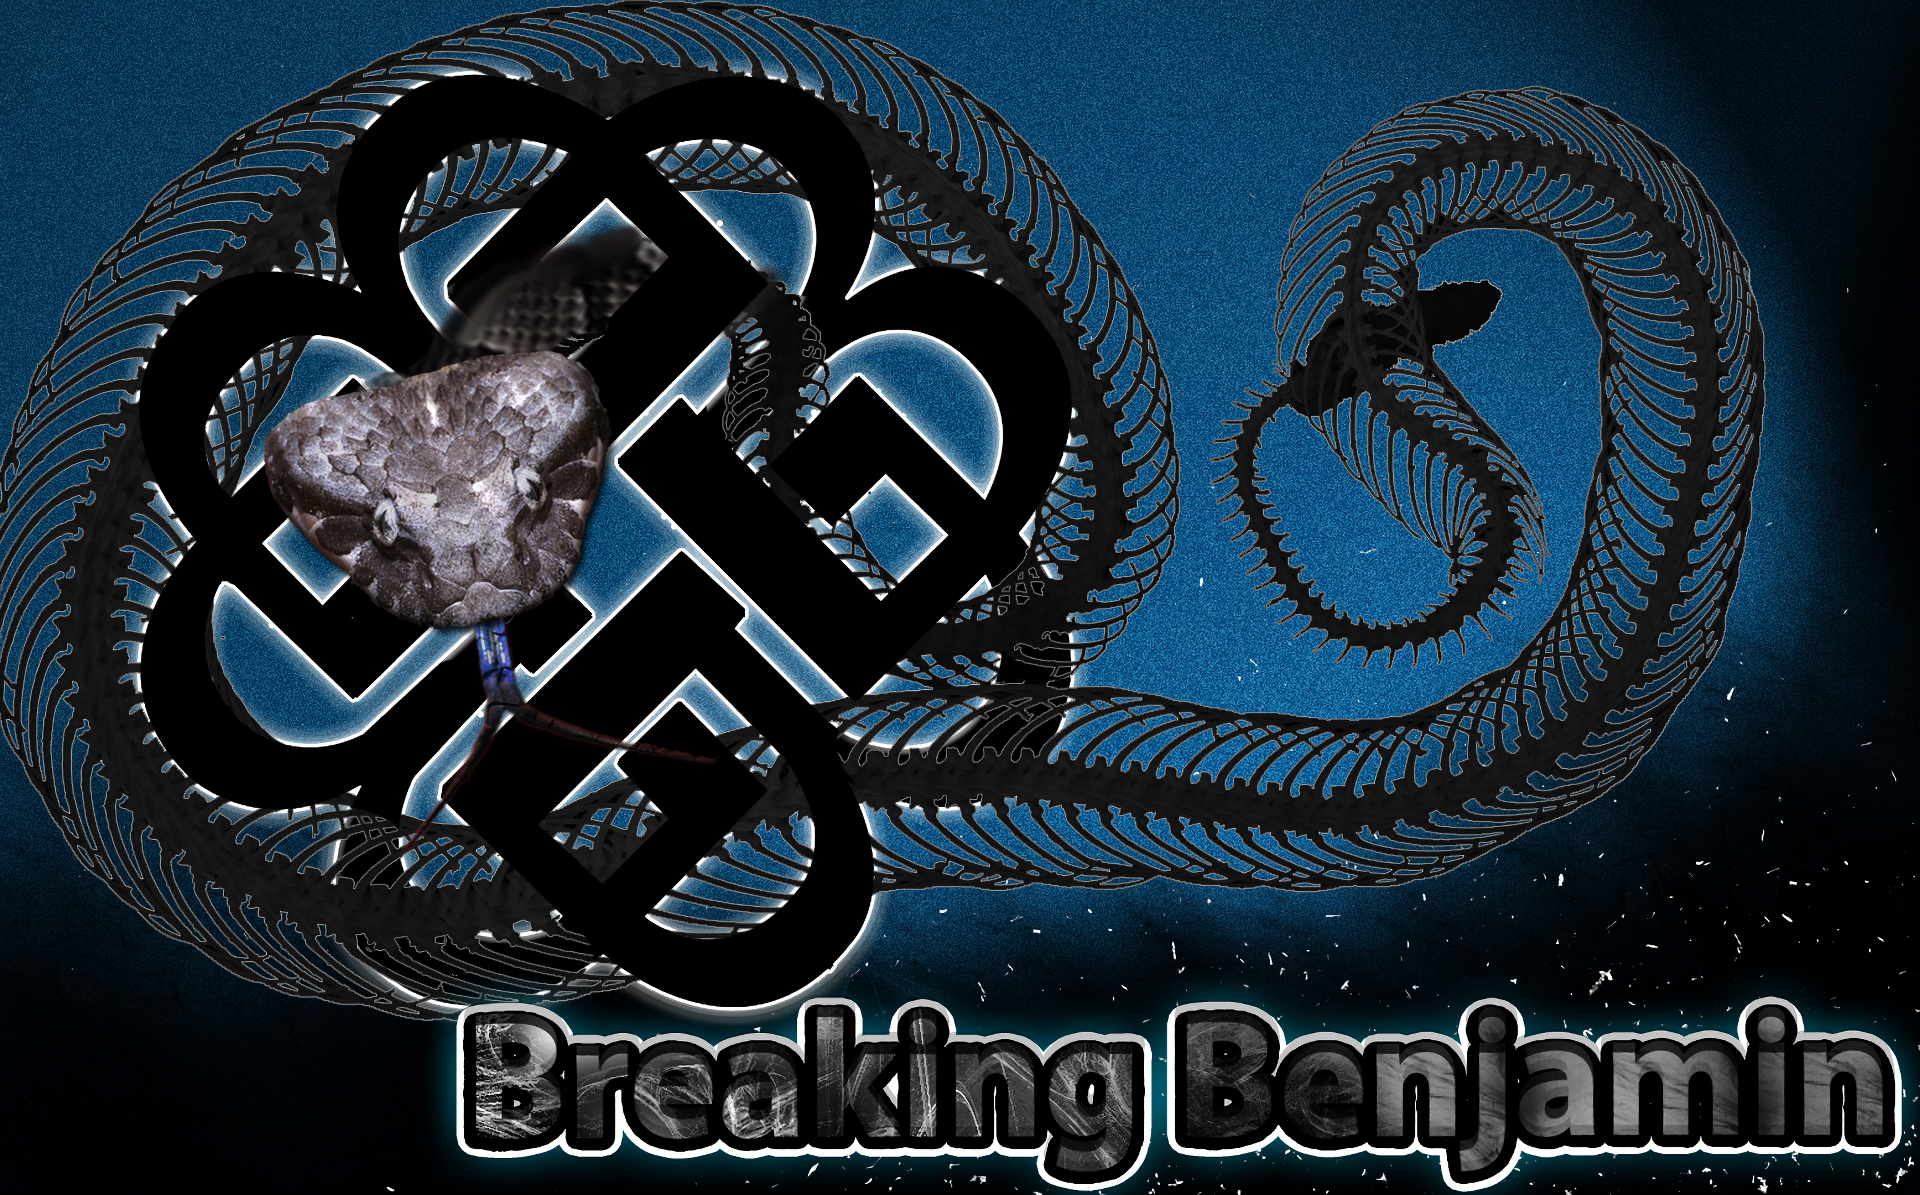 13 Breaking Benjamin HD Wallpapers Background Images   Wallpaper 1920x1195